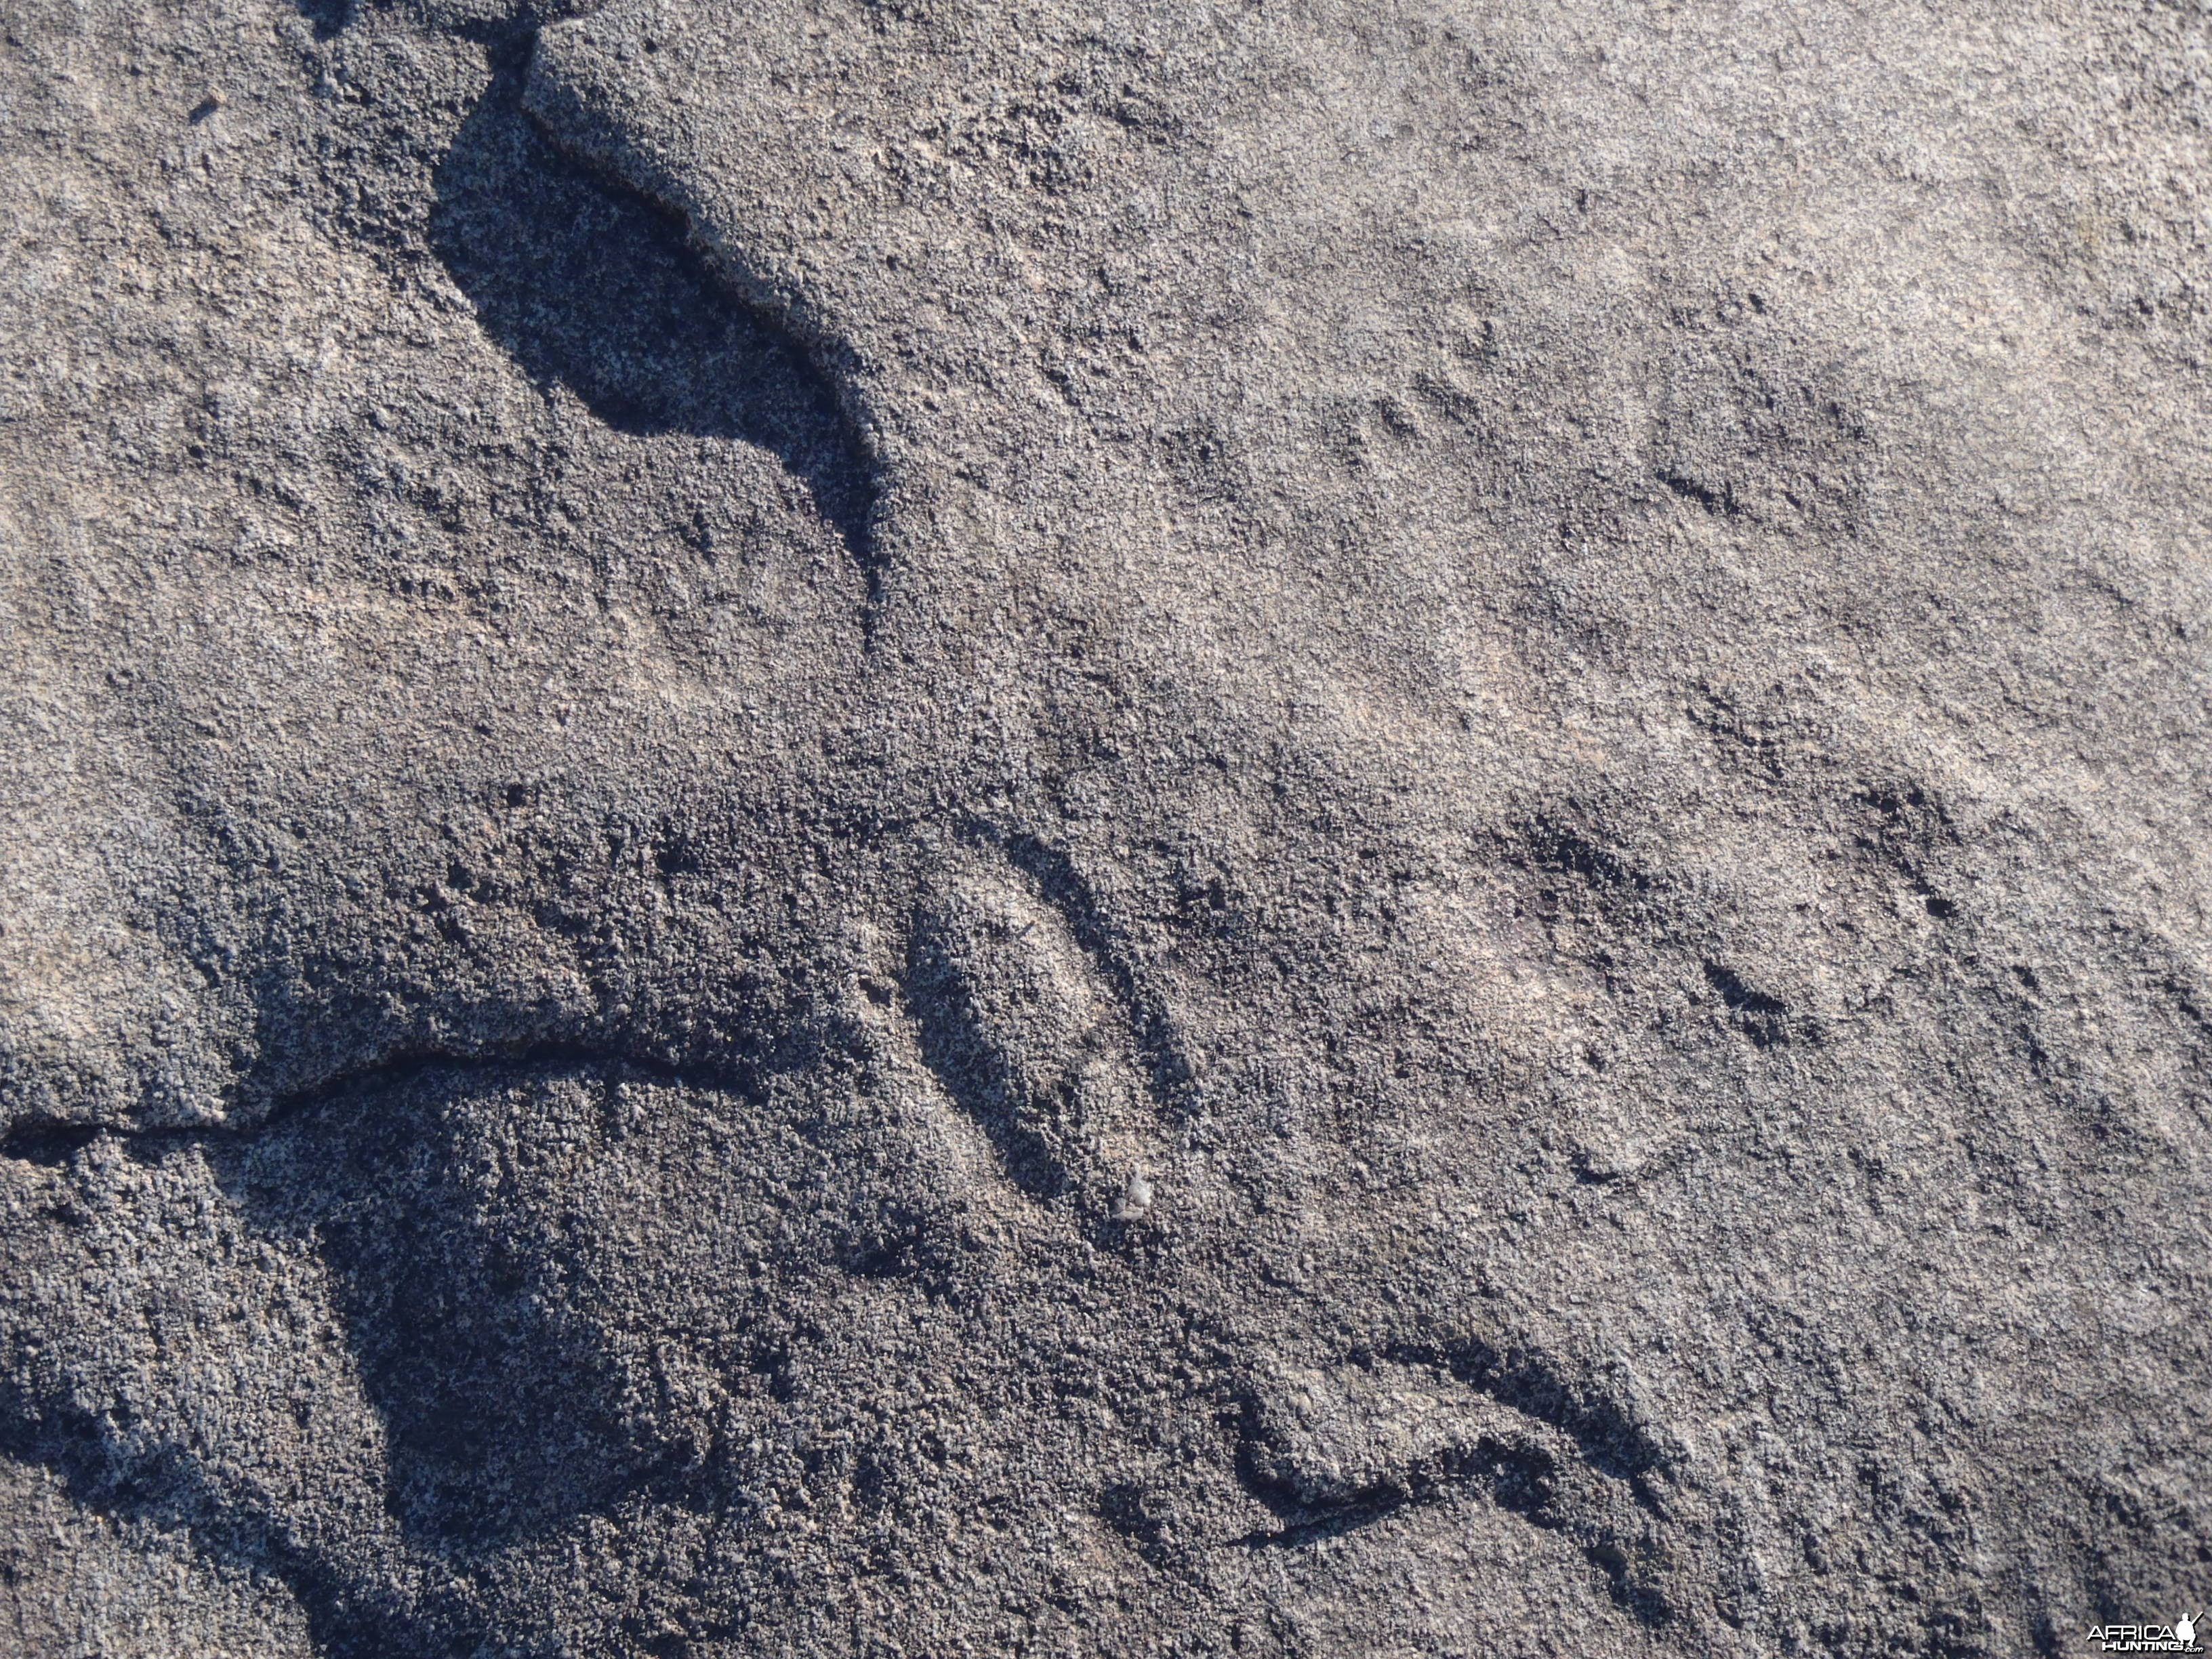 Animal prints in the rock in Namibia